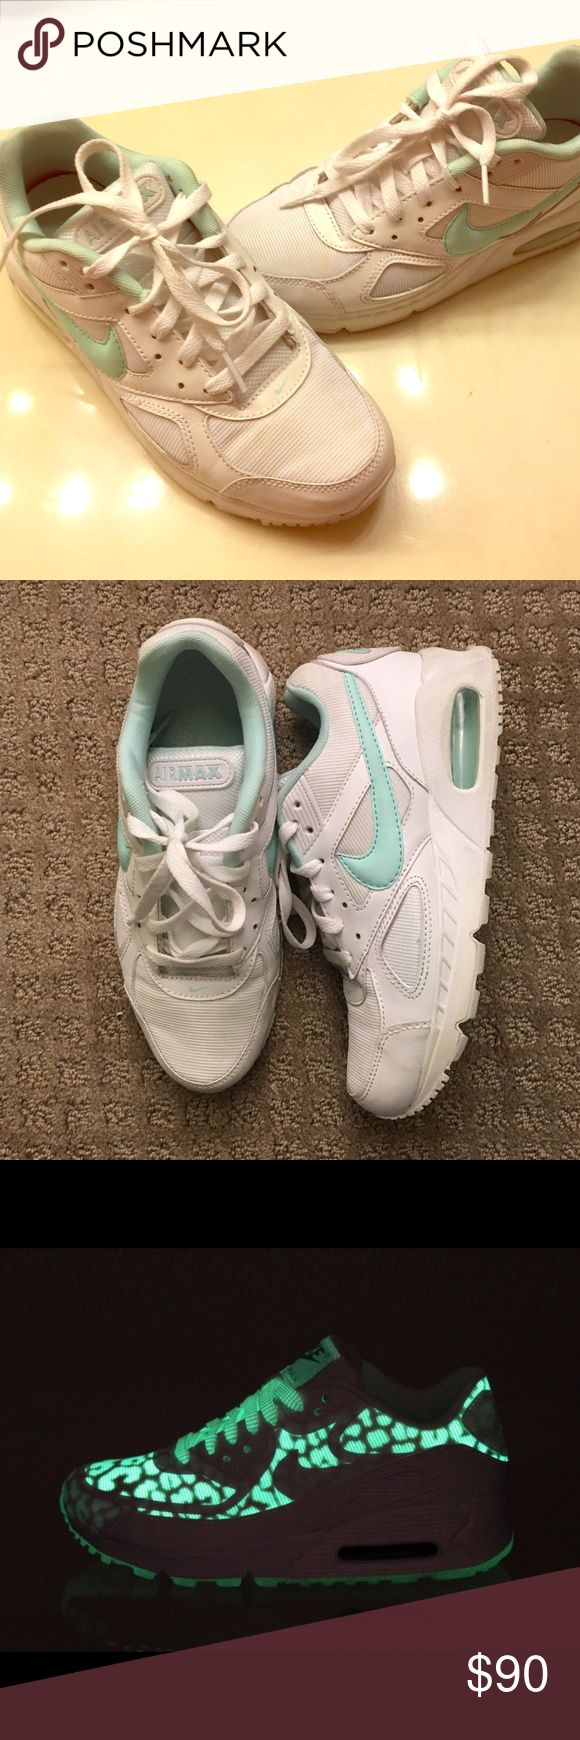 Women's Nike Air Max 🌟 GLOW in the DARK RARE Women's- Nike Air Max IVO 🌟 Glow in the DARK Leopard Print Trainers • White with Sweet Mint accents. So FRESH! 😍          *Gently Worn* Nike Shoes Sneakers